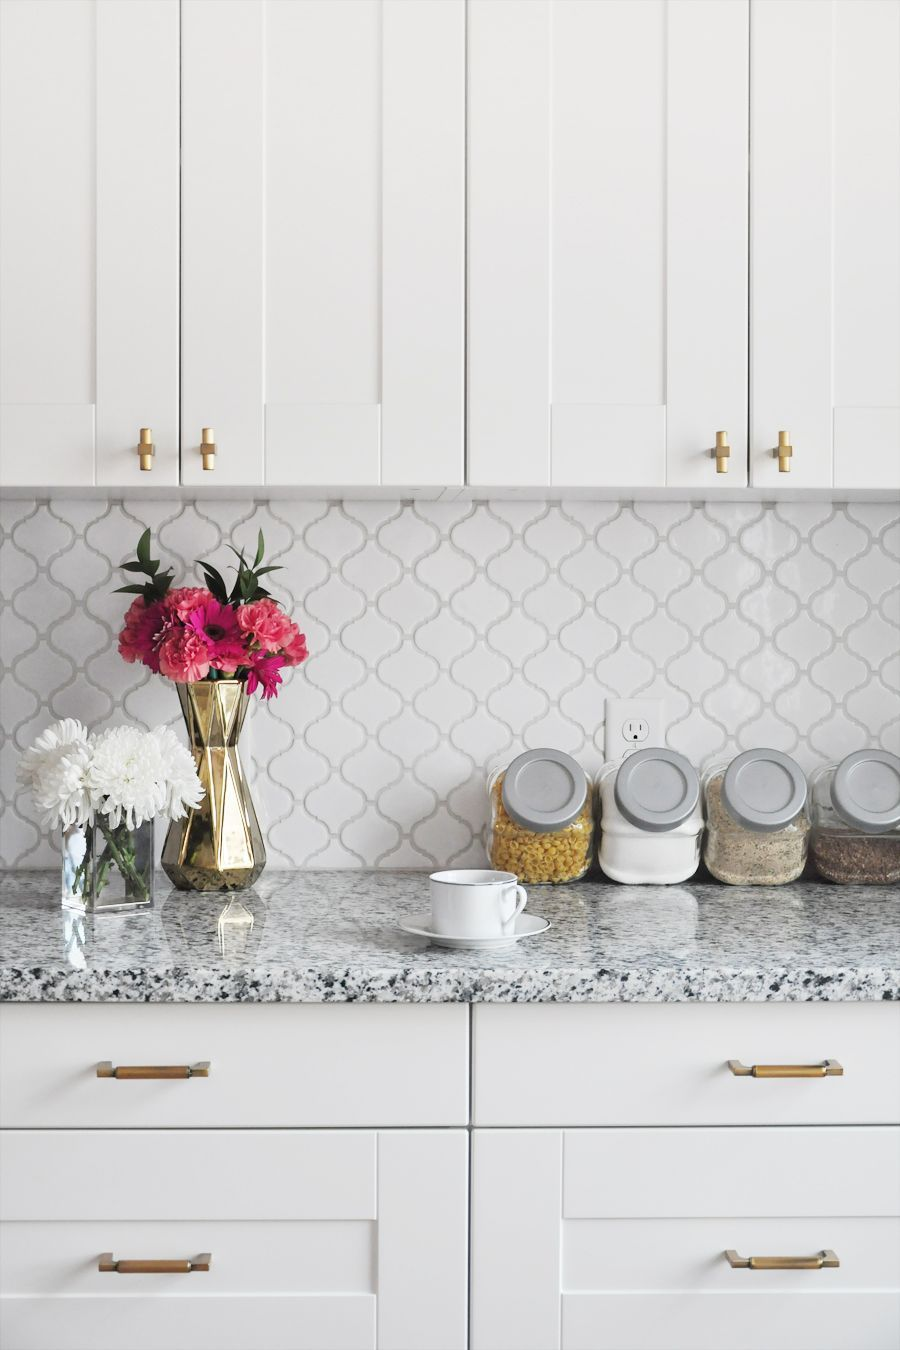 - White Glazed Porcelain Arabesque Backsplash Tile Backsplash.com